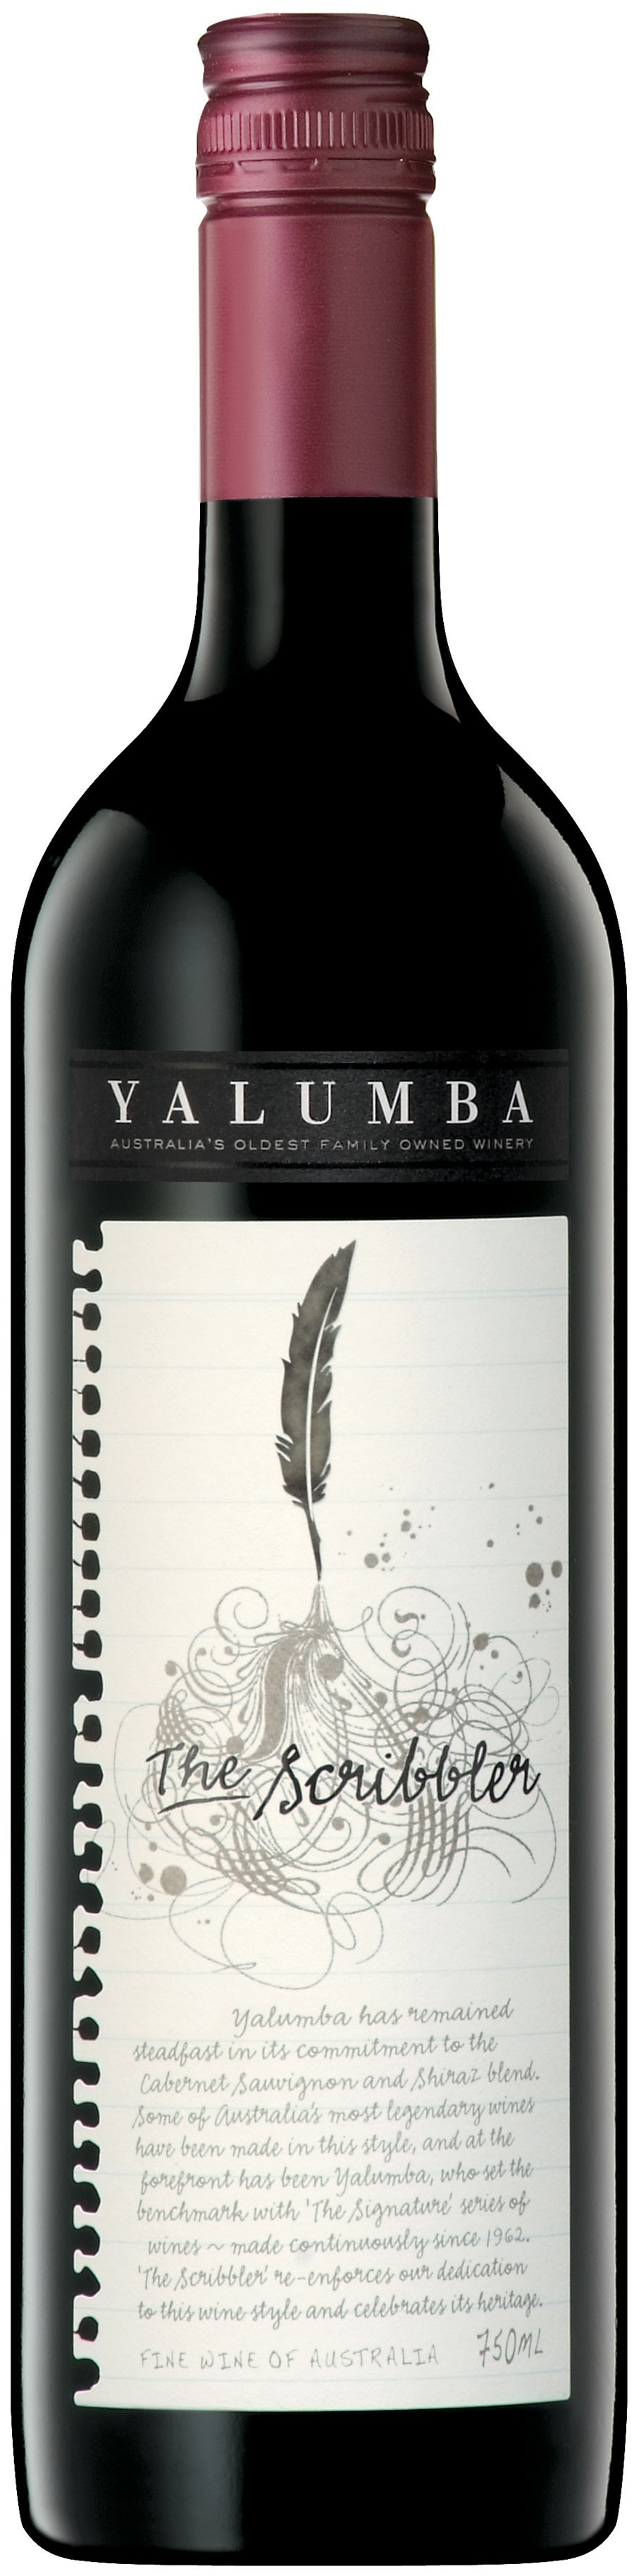 Yalumba The Scribbler Cabernet Sauvignon & Shiraz